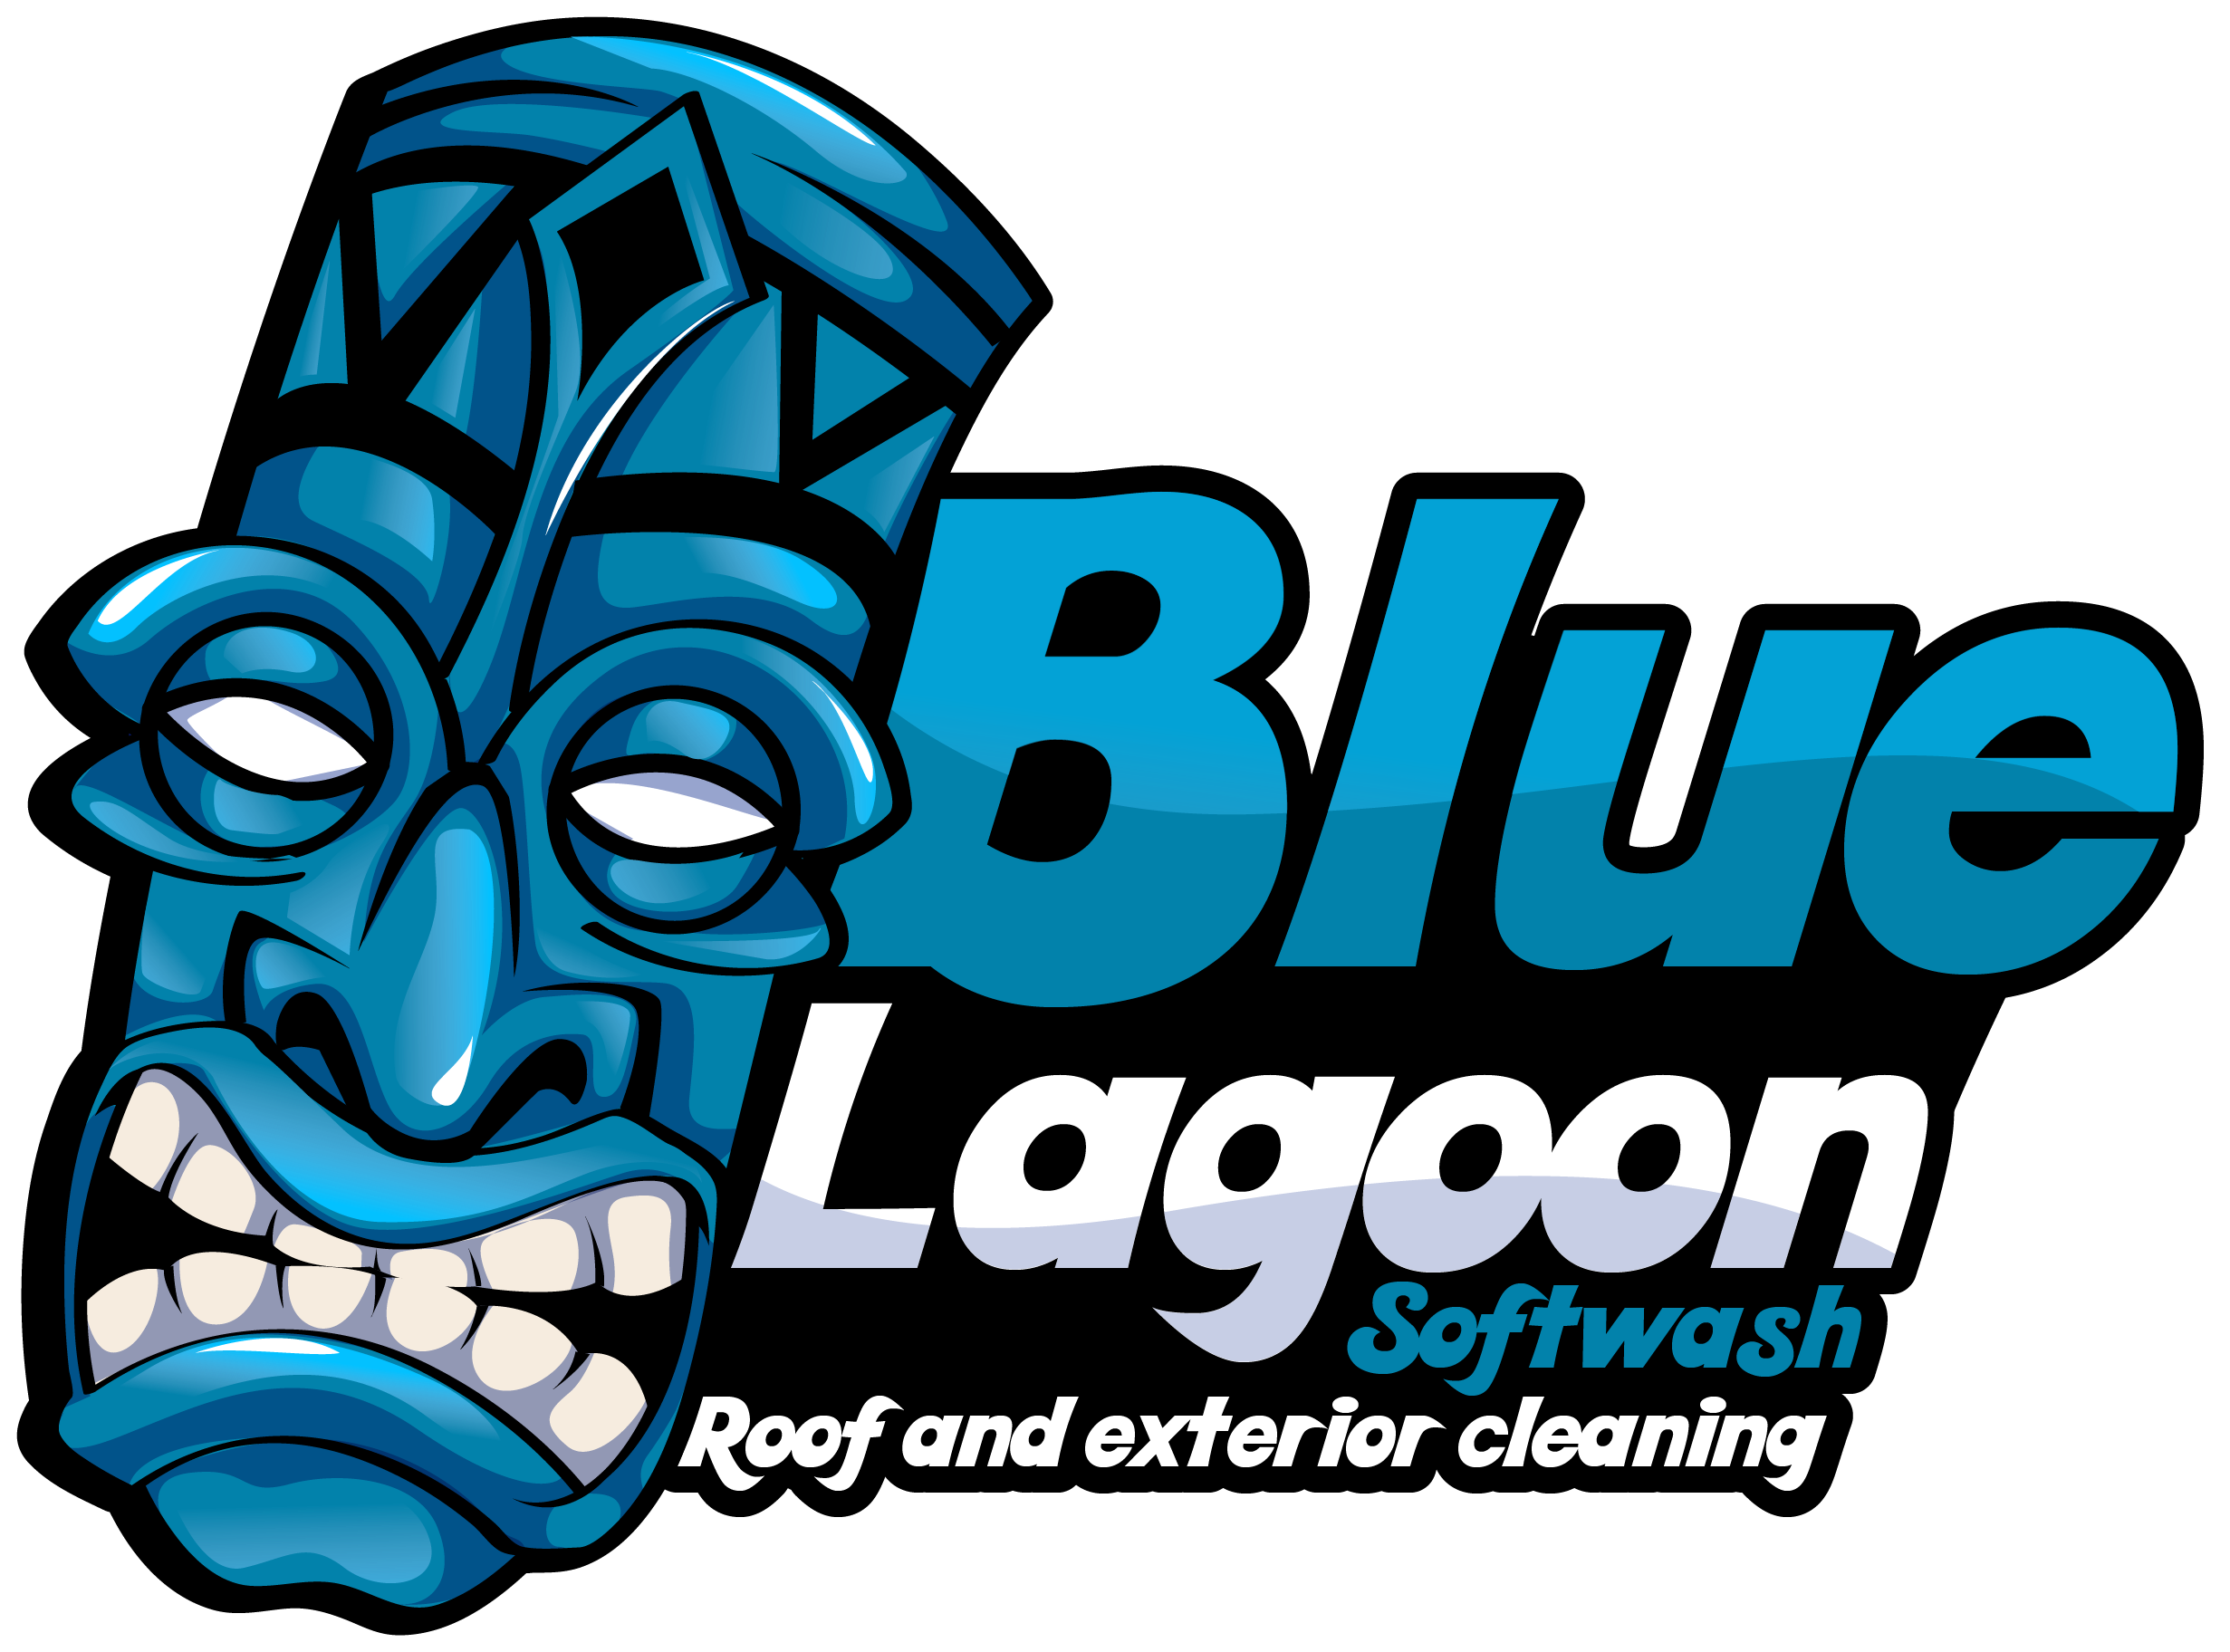 Blue Lagoon SoftWash